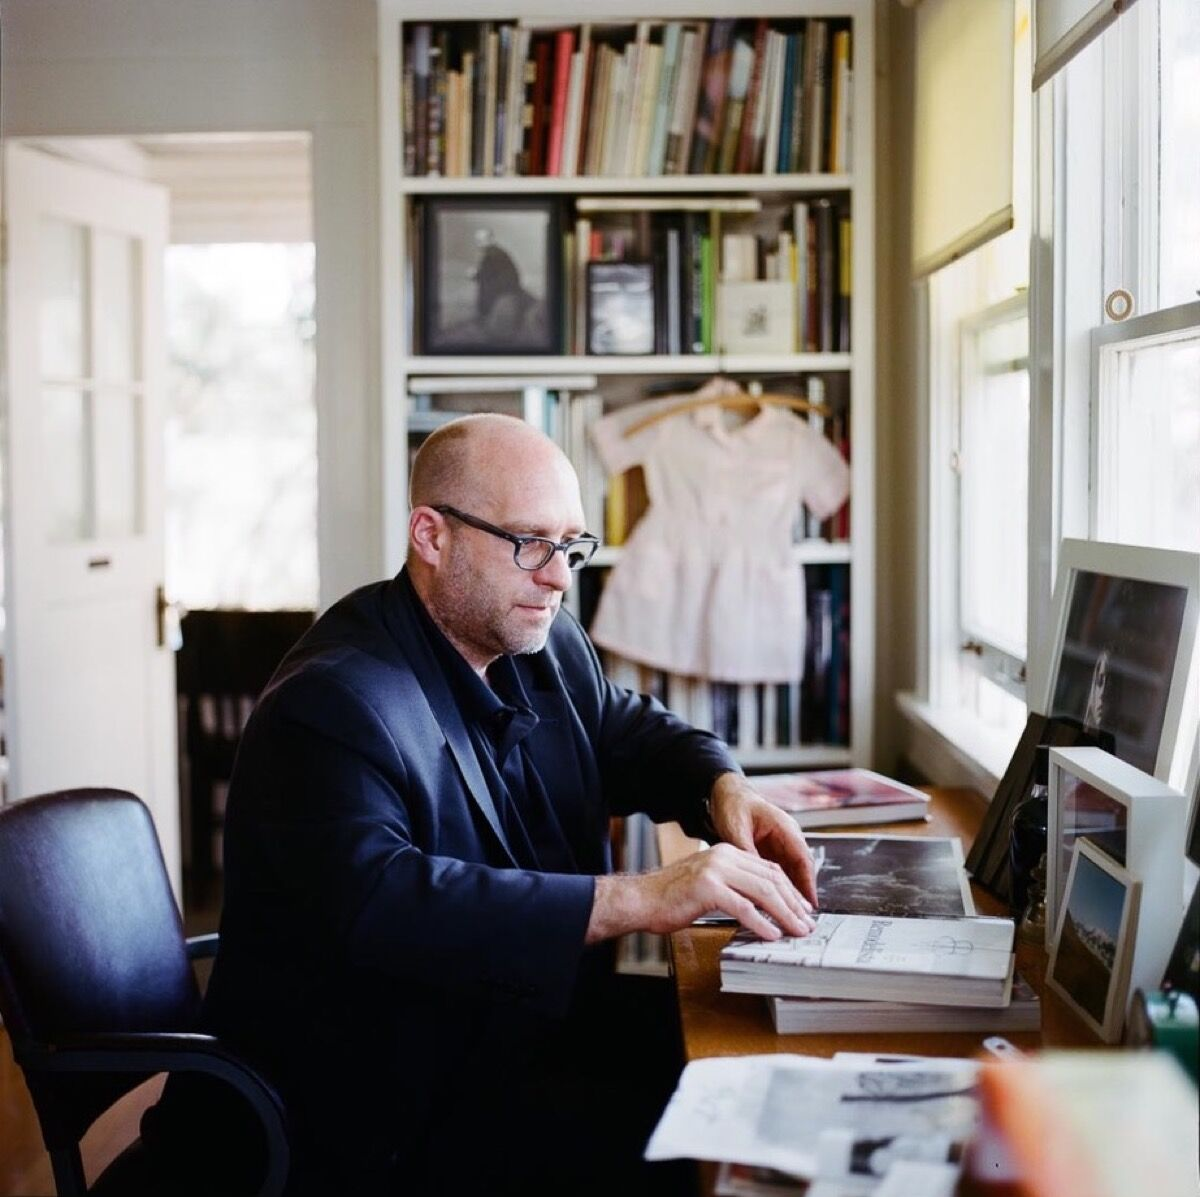 Todd Hido with his photo book collection. © Todd Hido.